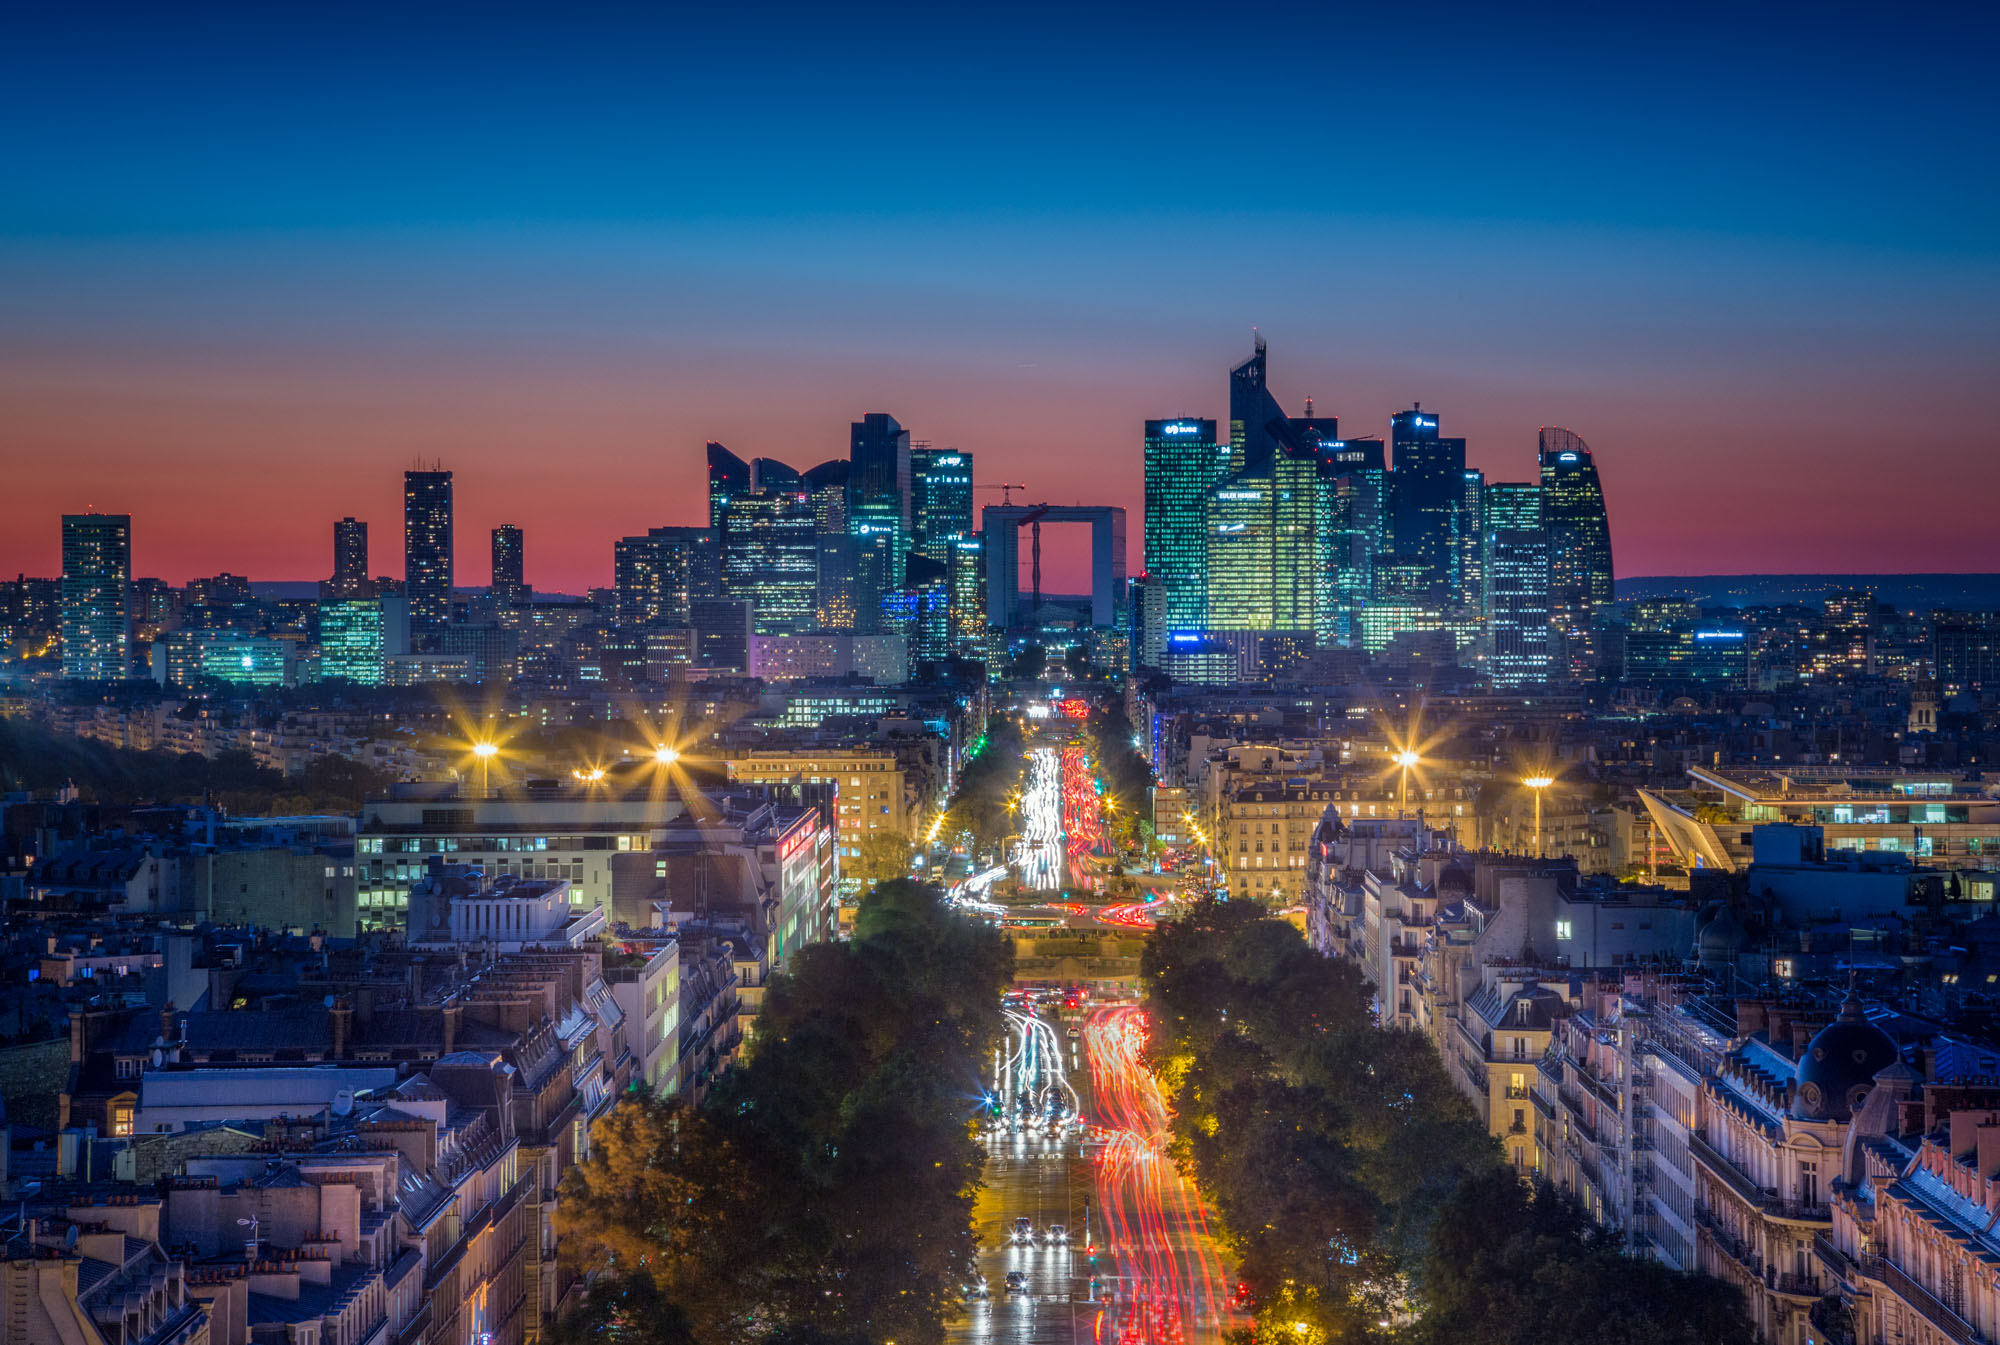 long exposure night photography of the Boulevards in Paris with light trails at sunset viewed from above